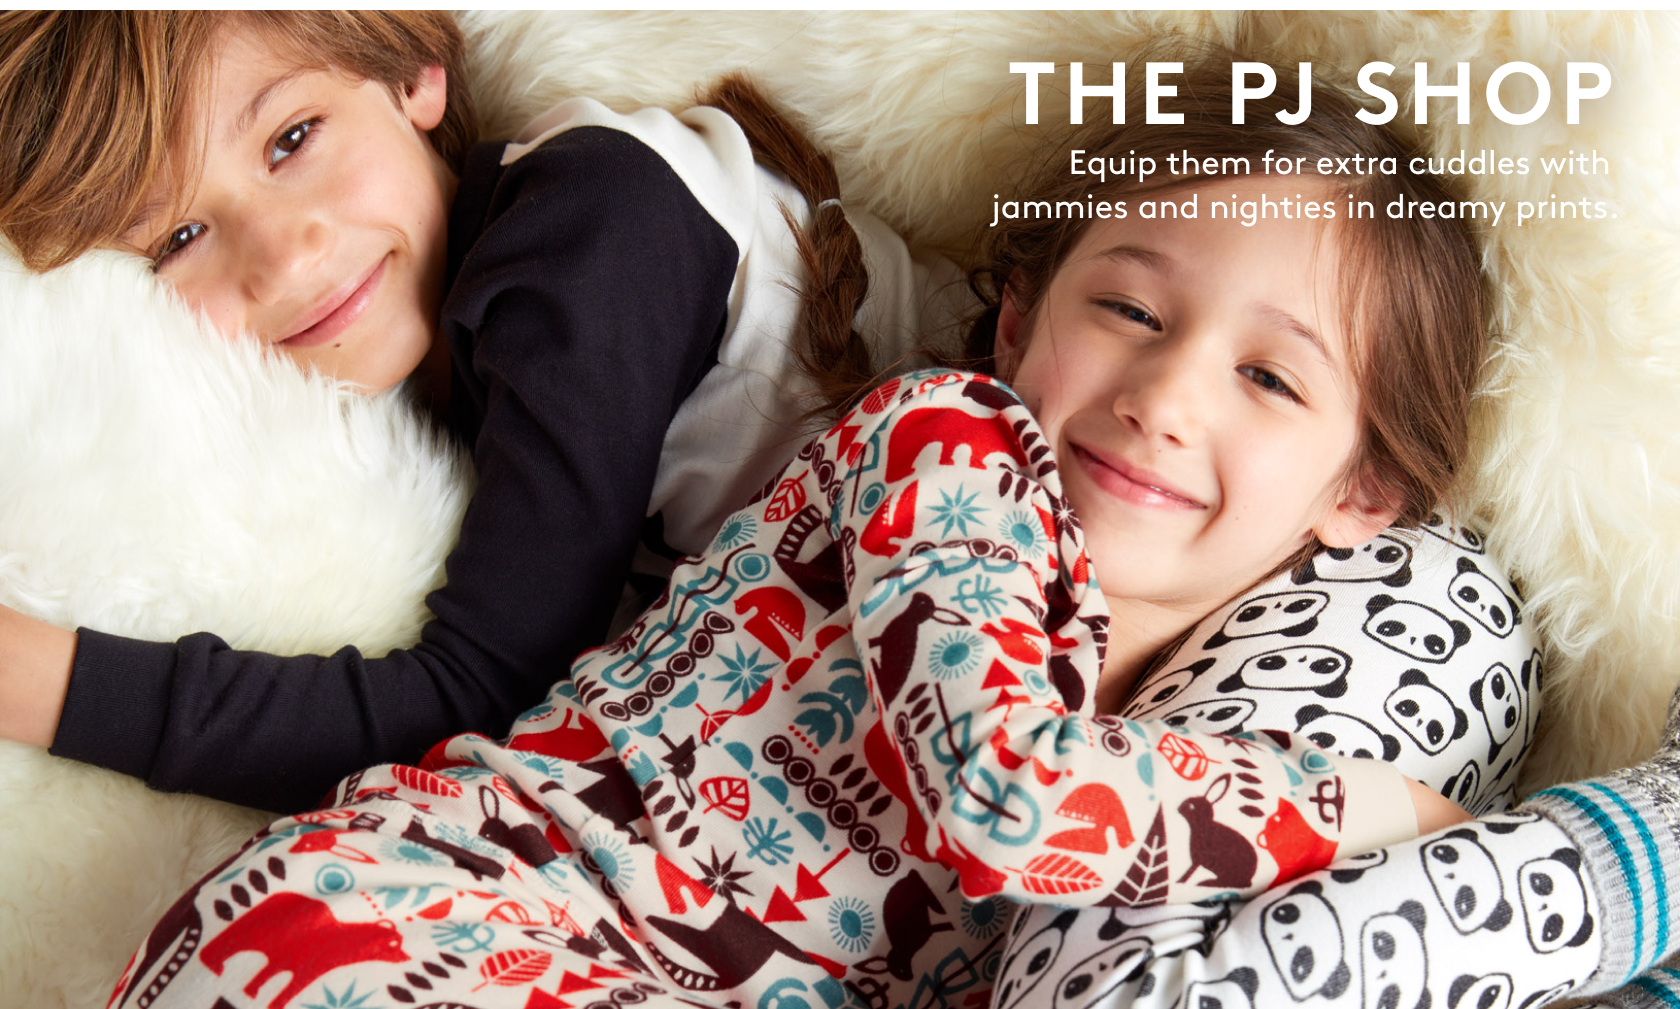 the pj shop Equip them for extra cuddles with jammies and nighties in dreamy prints.